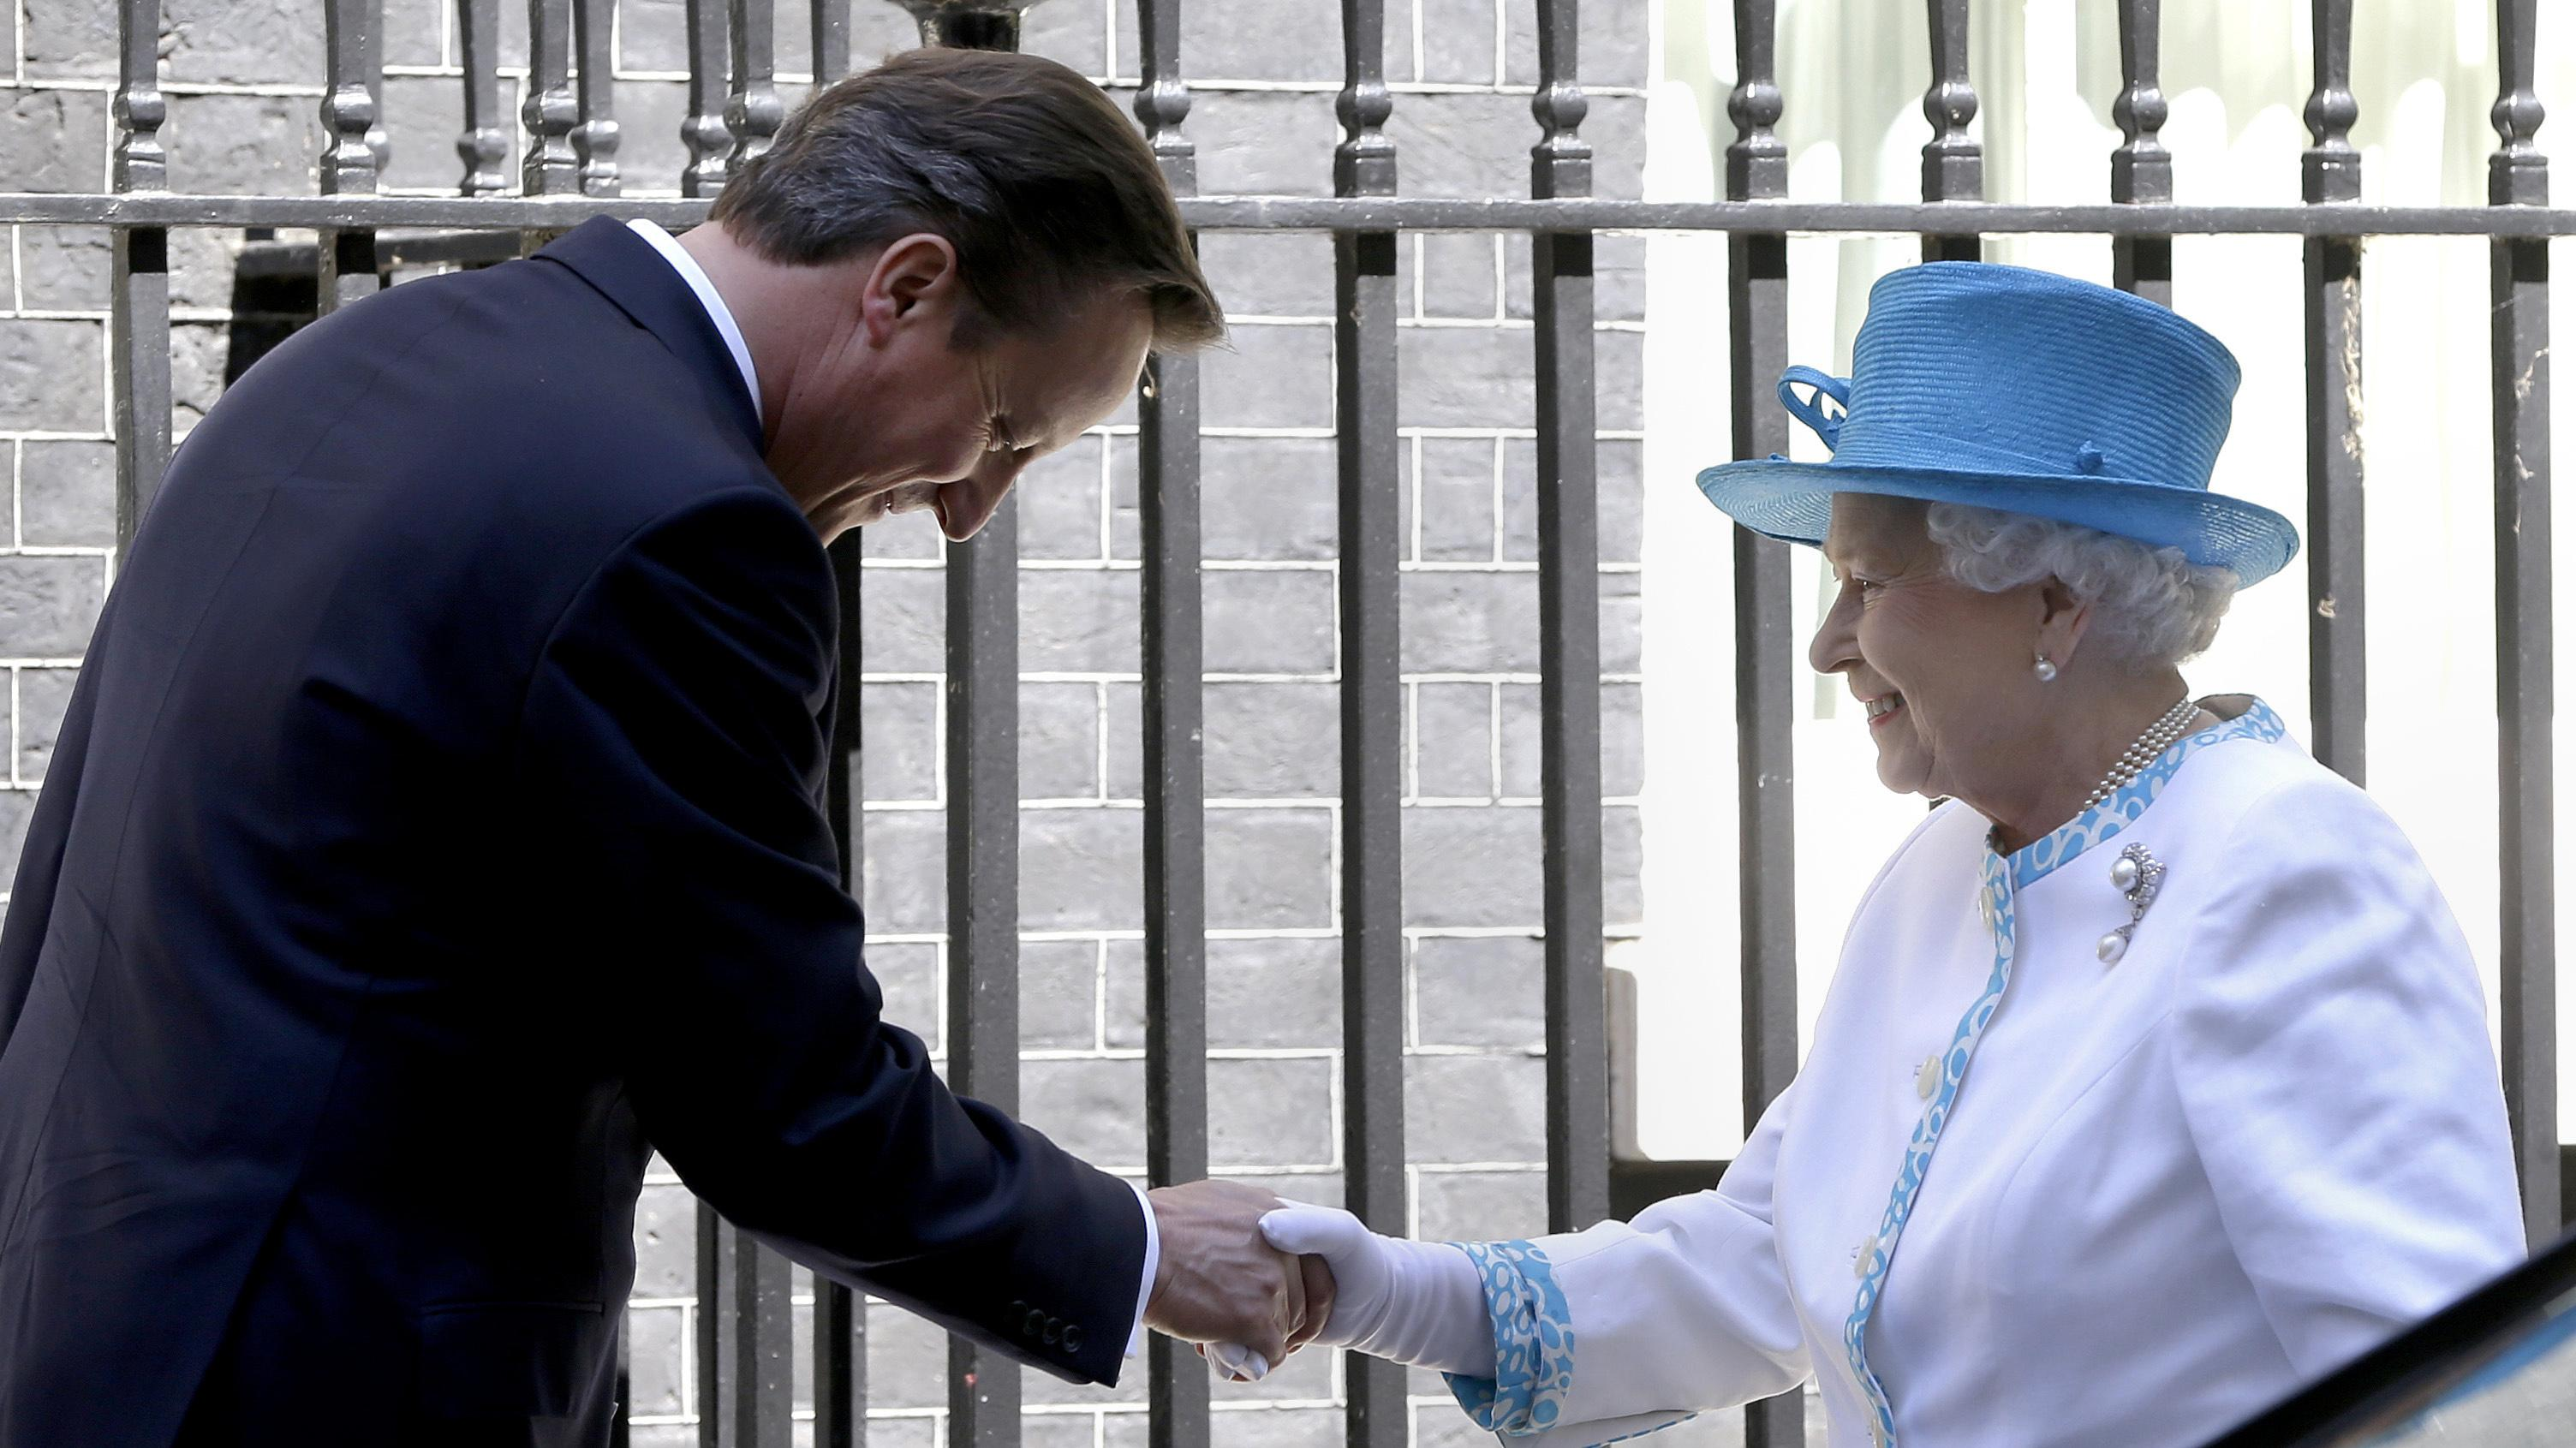 The Queen above politics? Not when Cameron and Johnson come calling